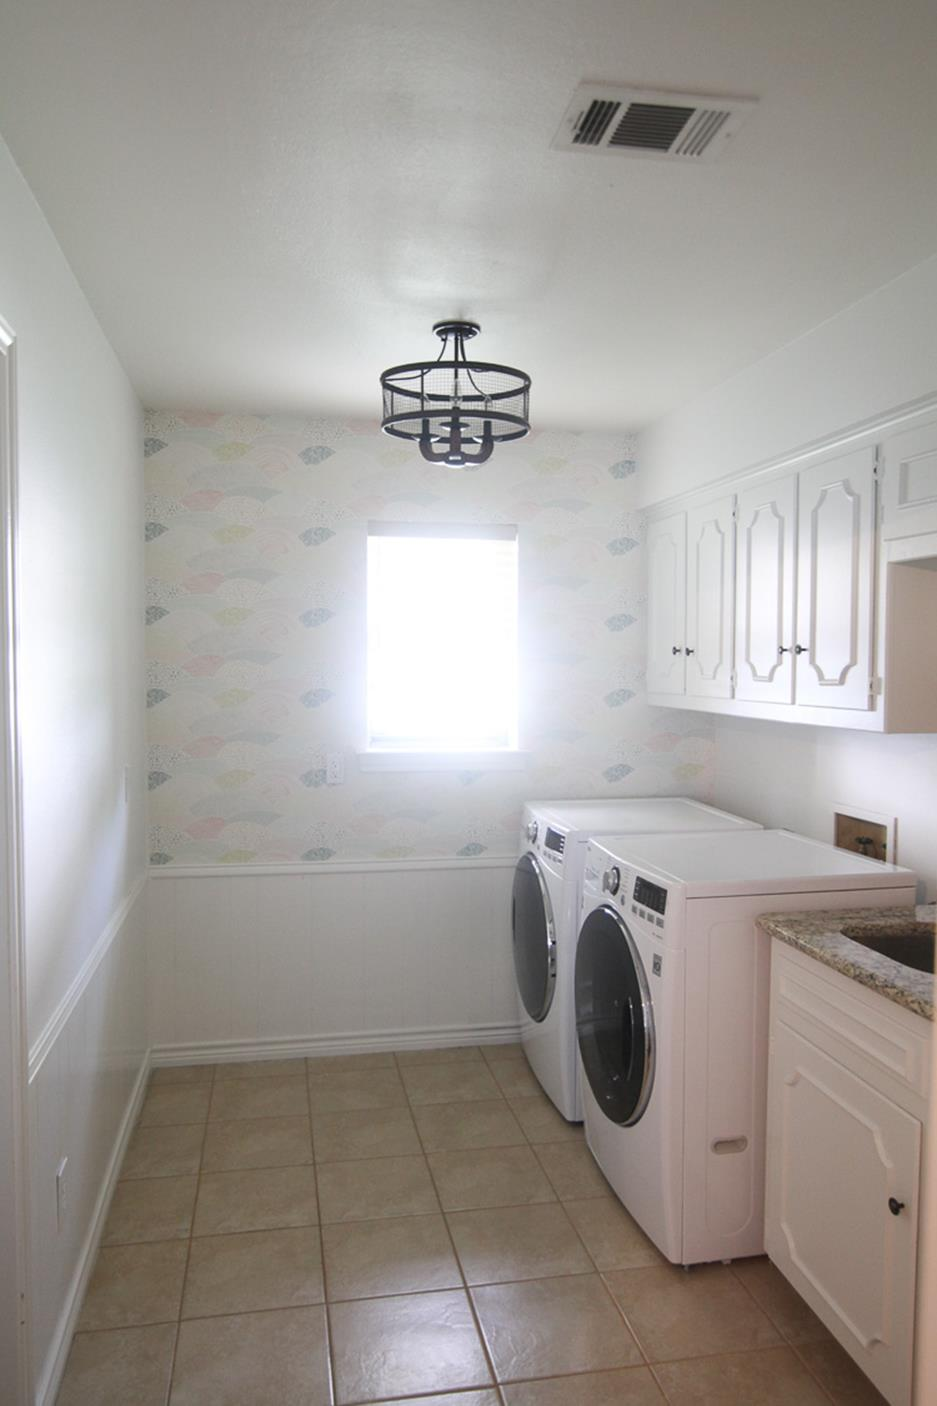 Light Fixtures Ideas For Laundry Room 16